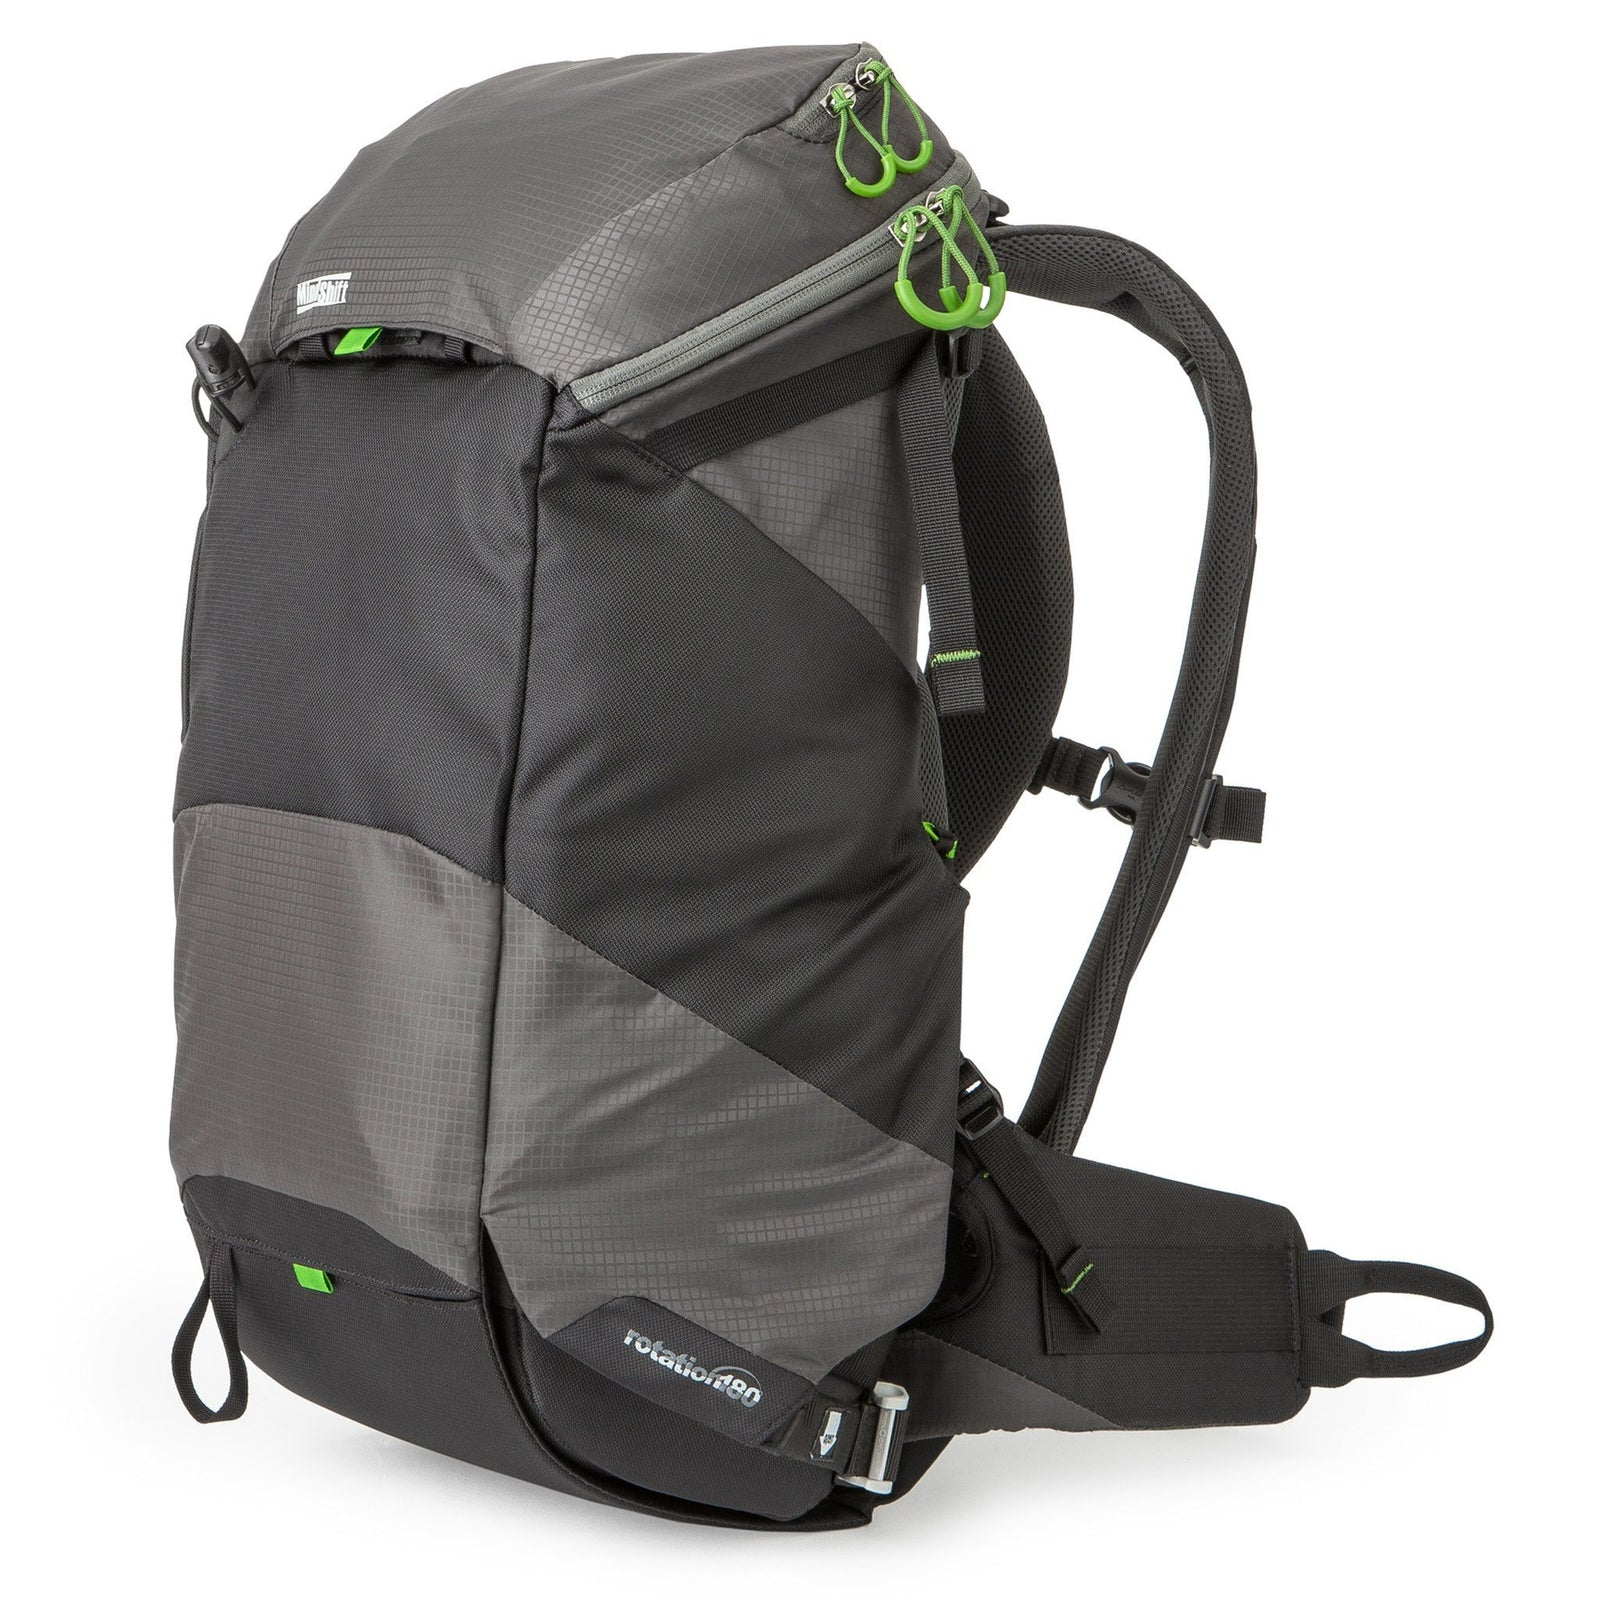 Mindshift Gear Rotation 180 Panorama 22L - Trailblazer Outdoors, Pickering